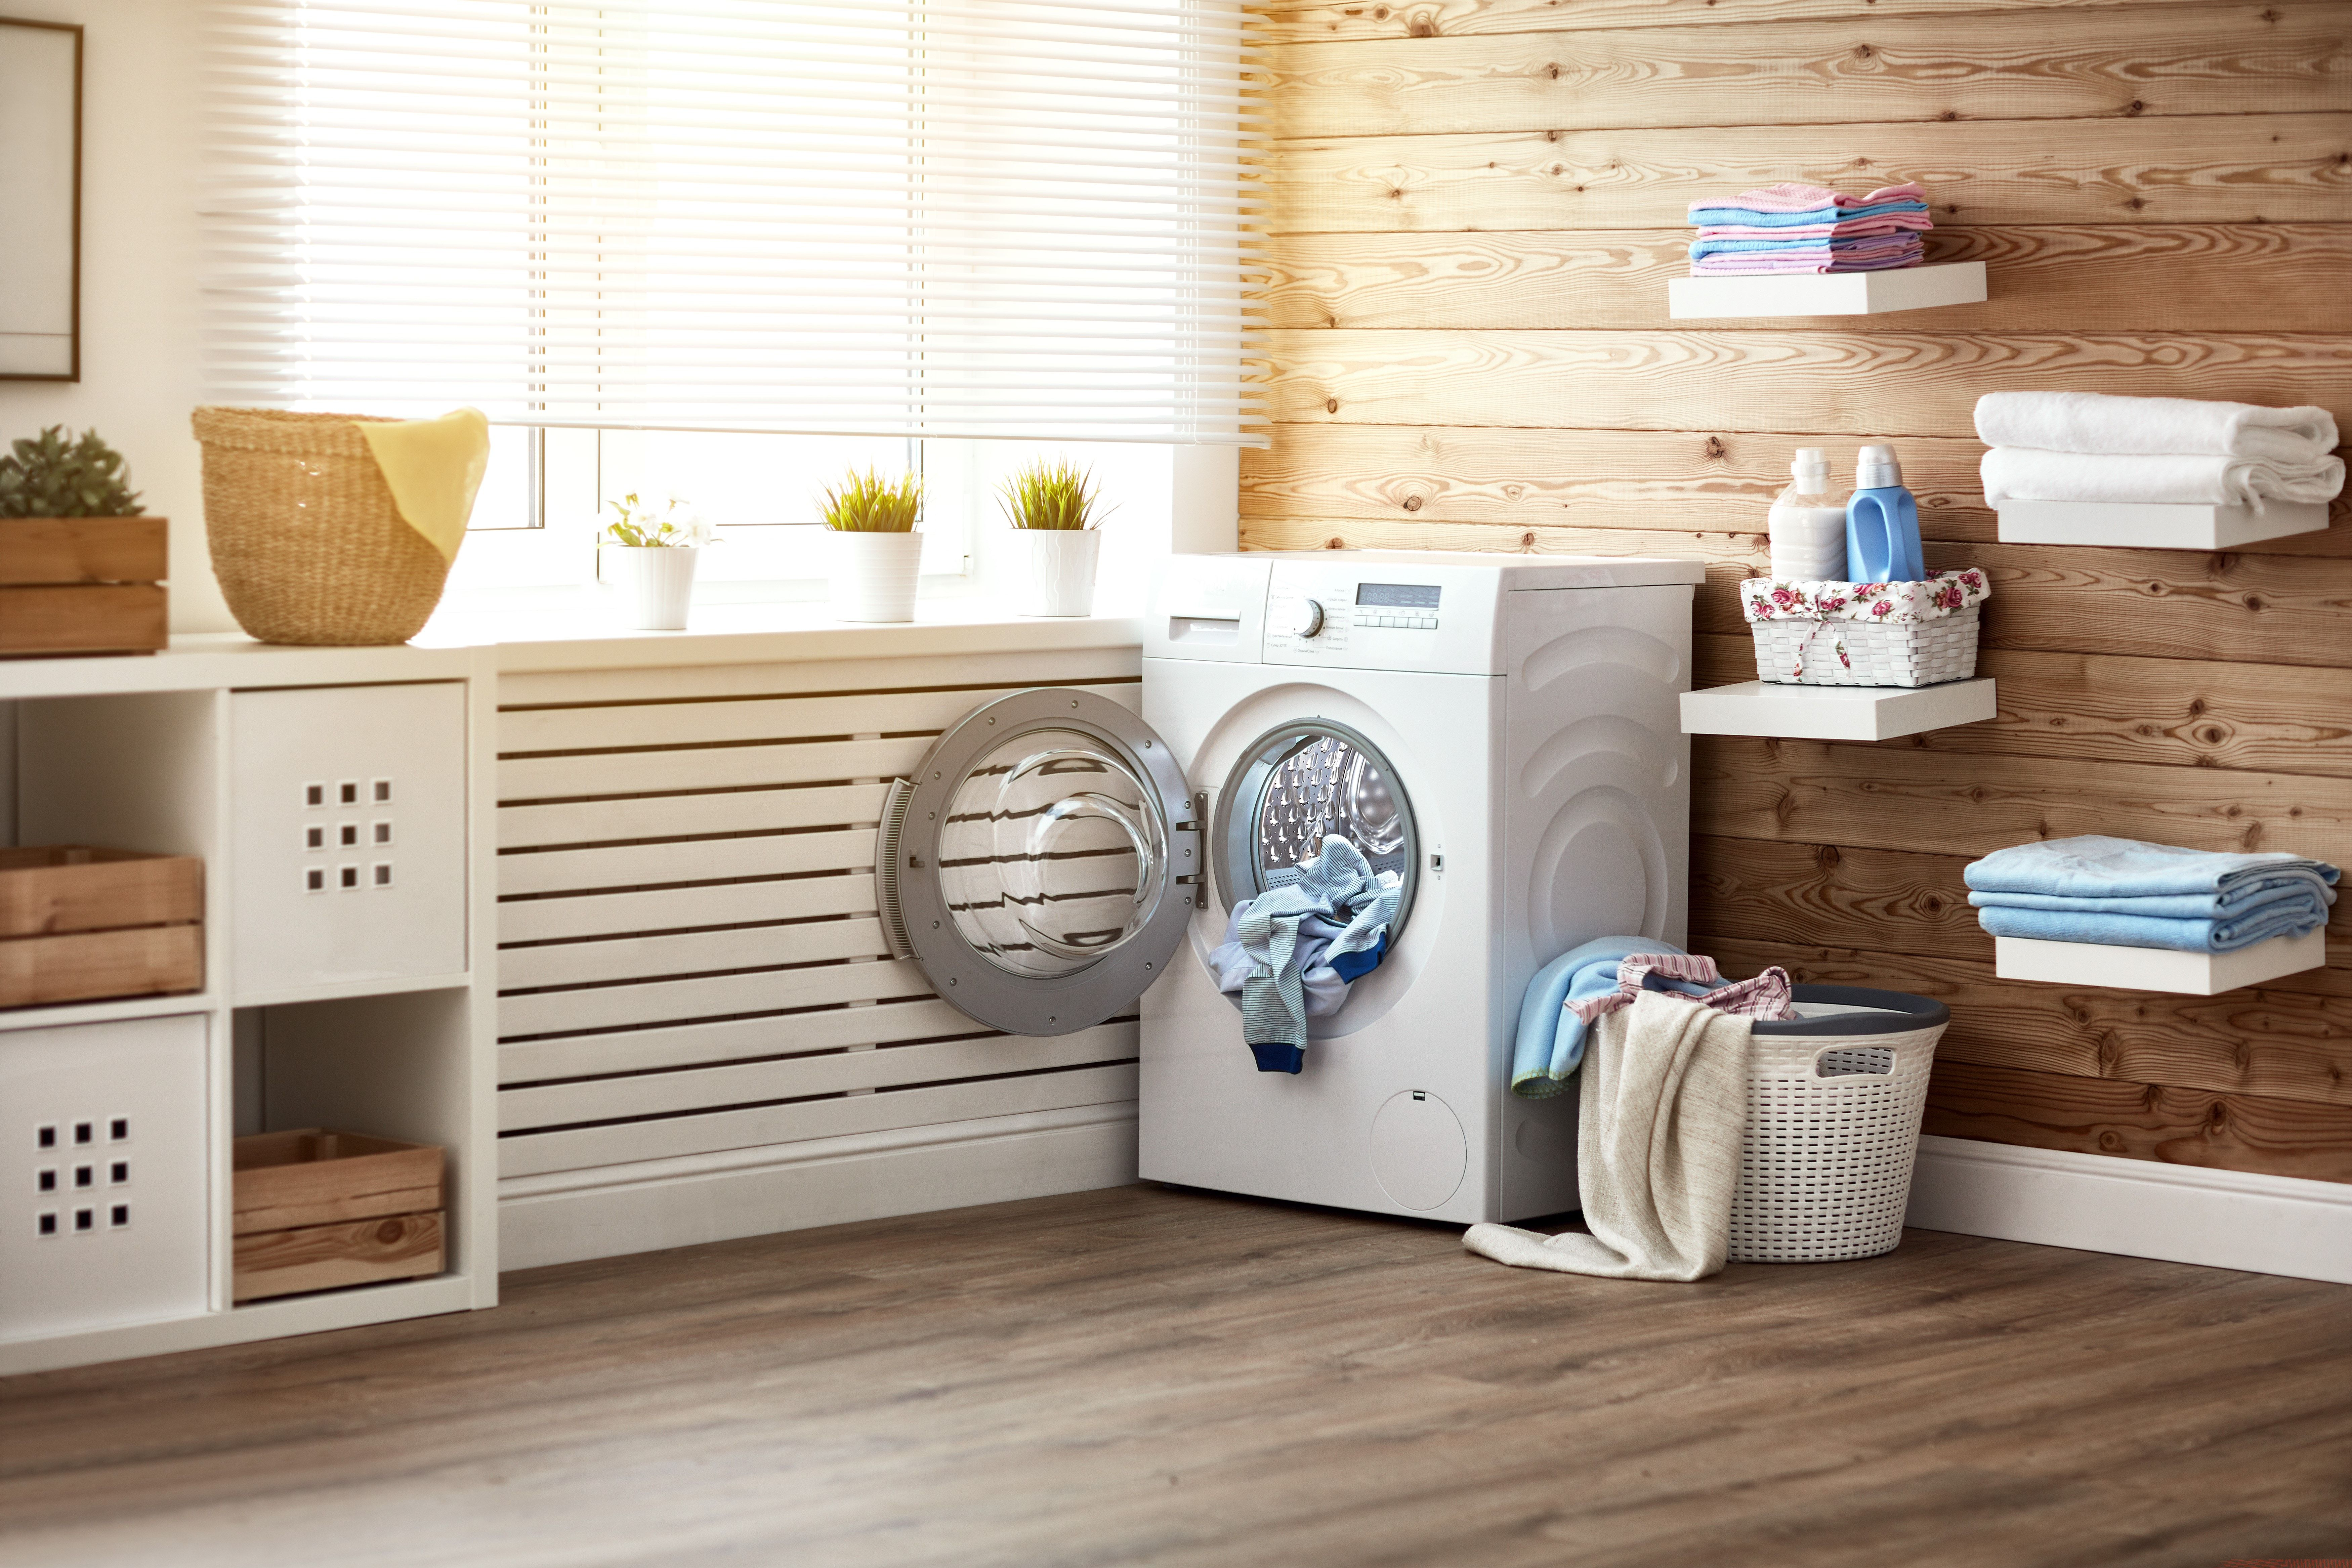 Tumble dryer buying guide - how to buy a tumble dryer - buy the best